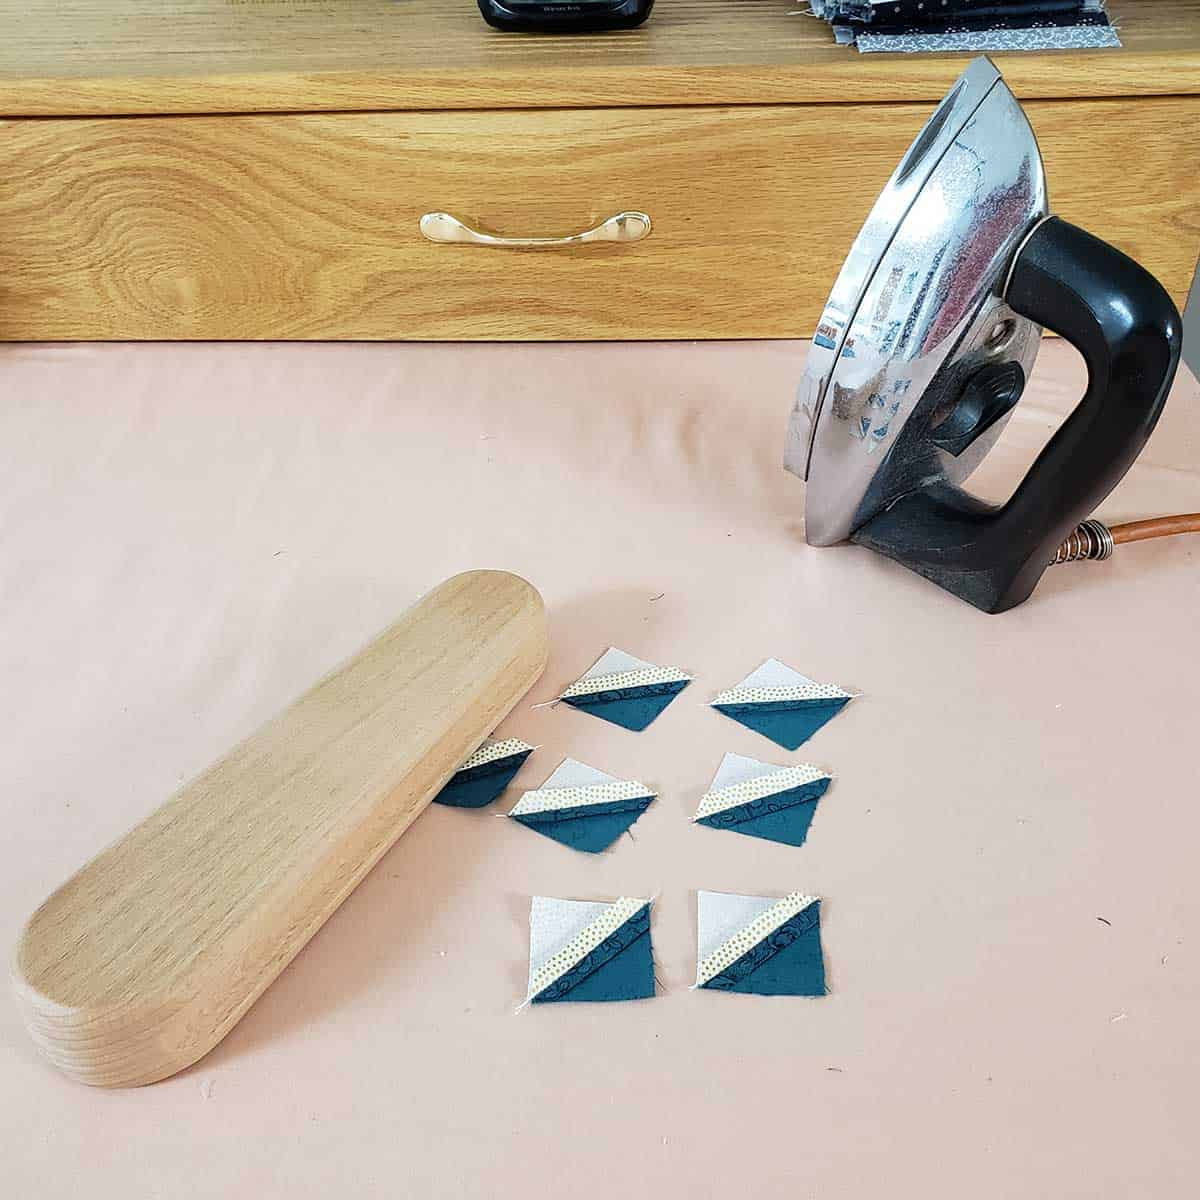 Using a tailor clapper to set the seams